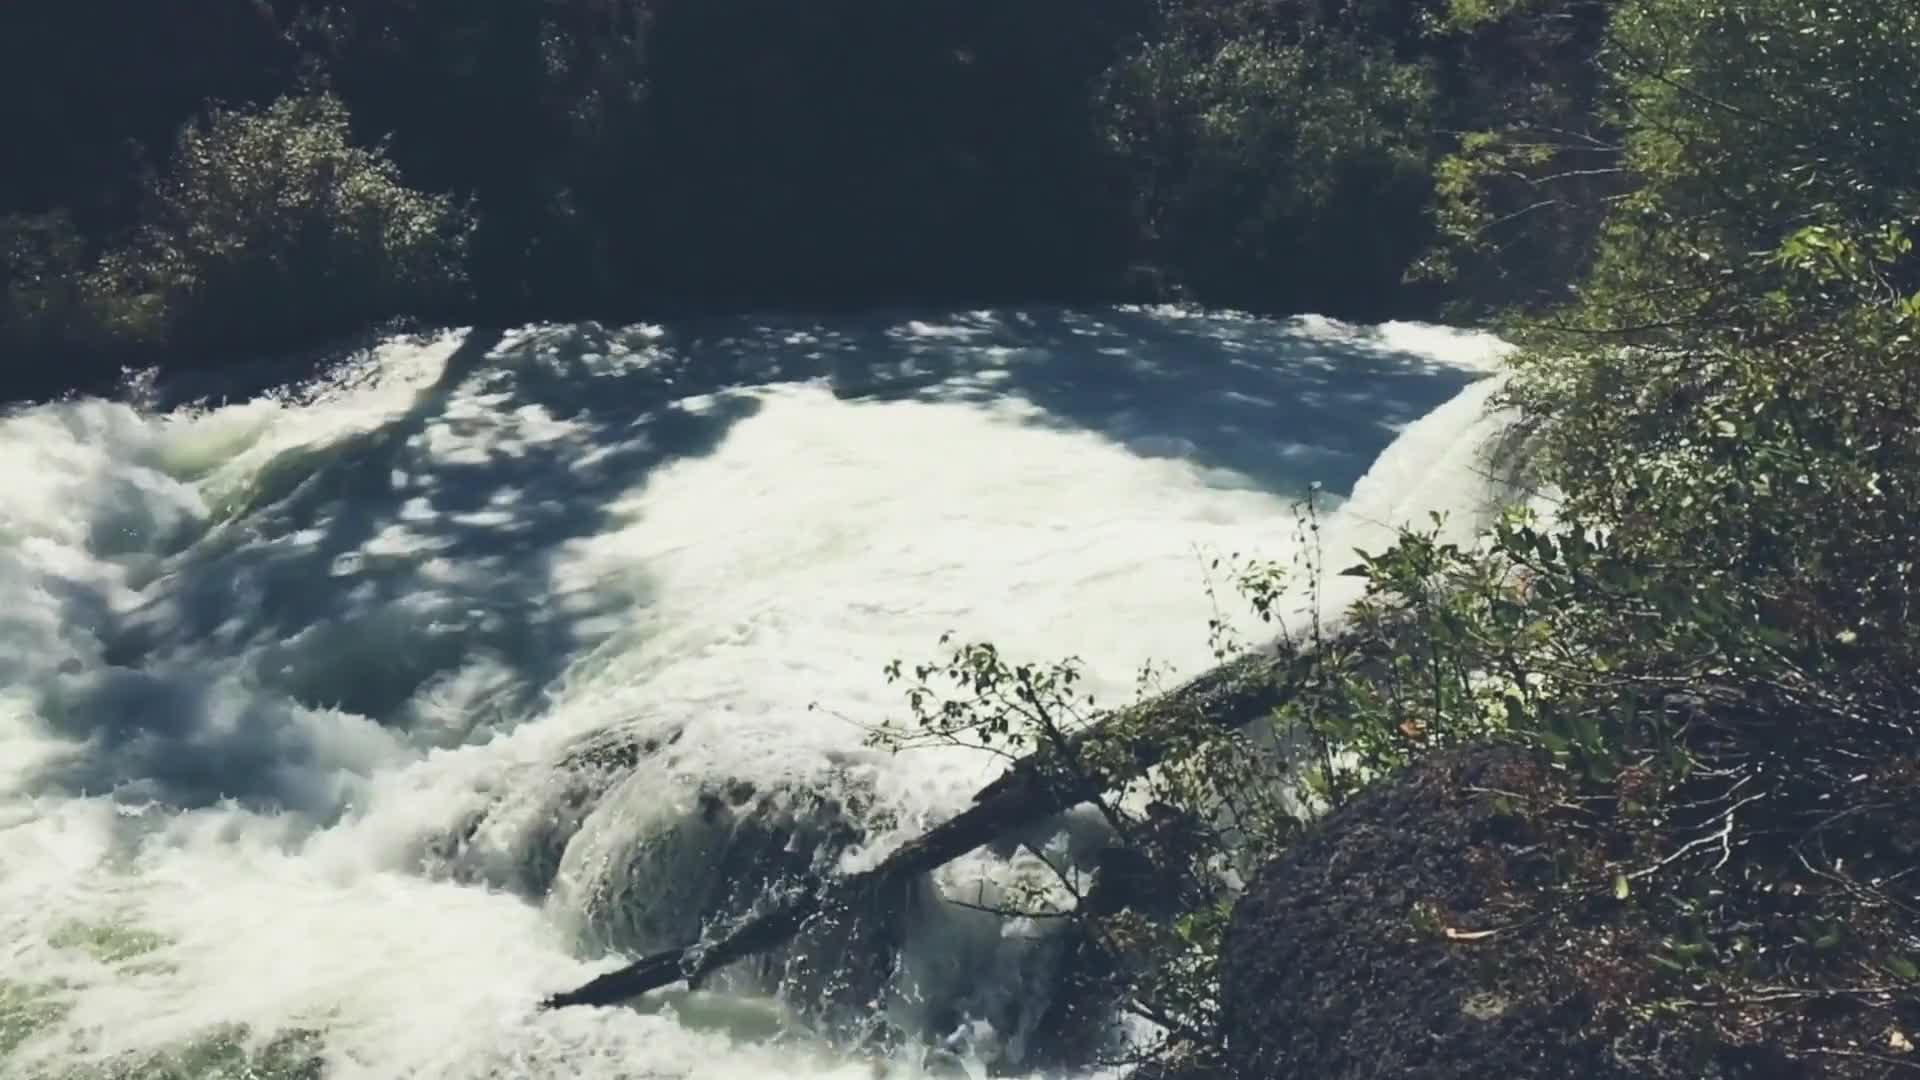 Footage of nature waterfalls